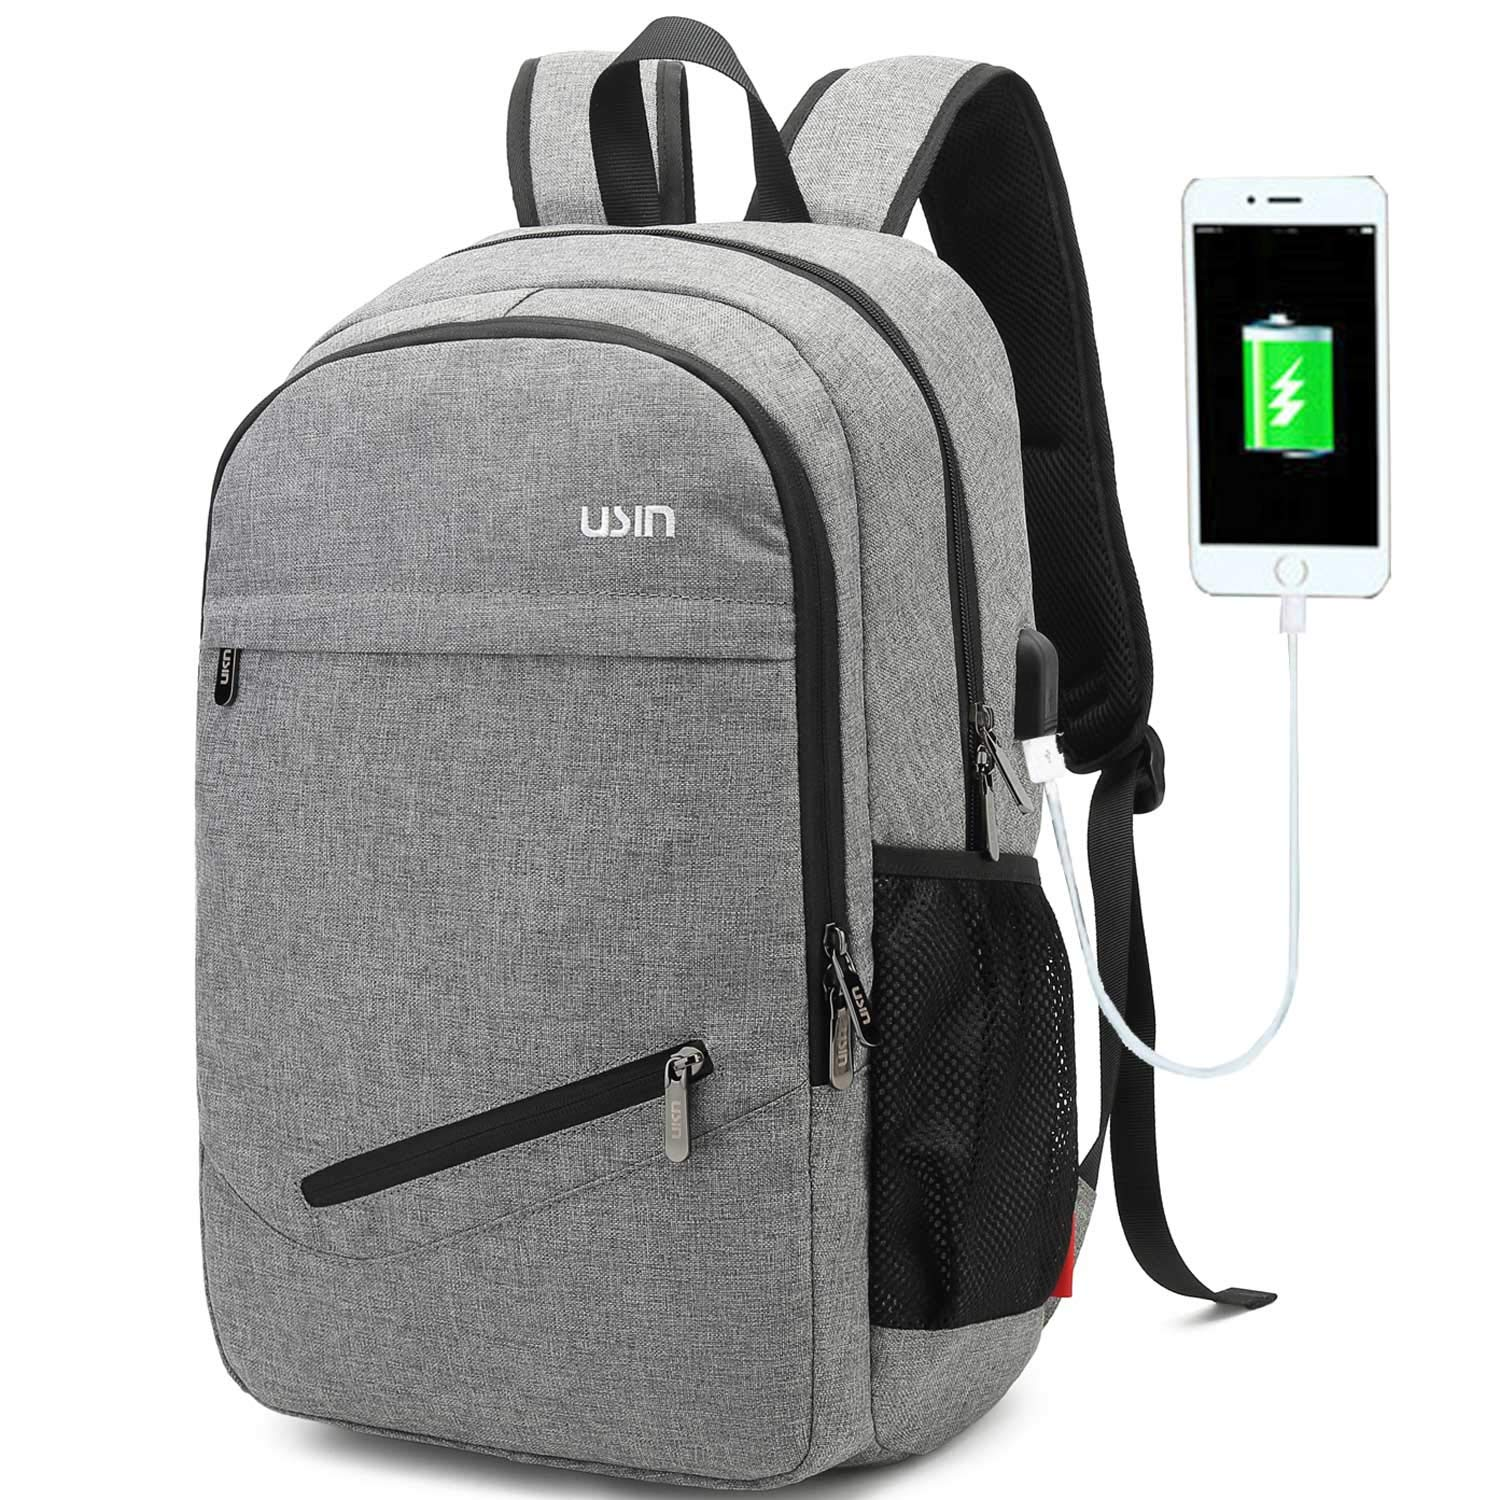 USIN Laptop Backpacks Fits 15 15.6 inch Water Repellent College Computer Backpacks with USB Charging Port for Men Women, grey